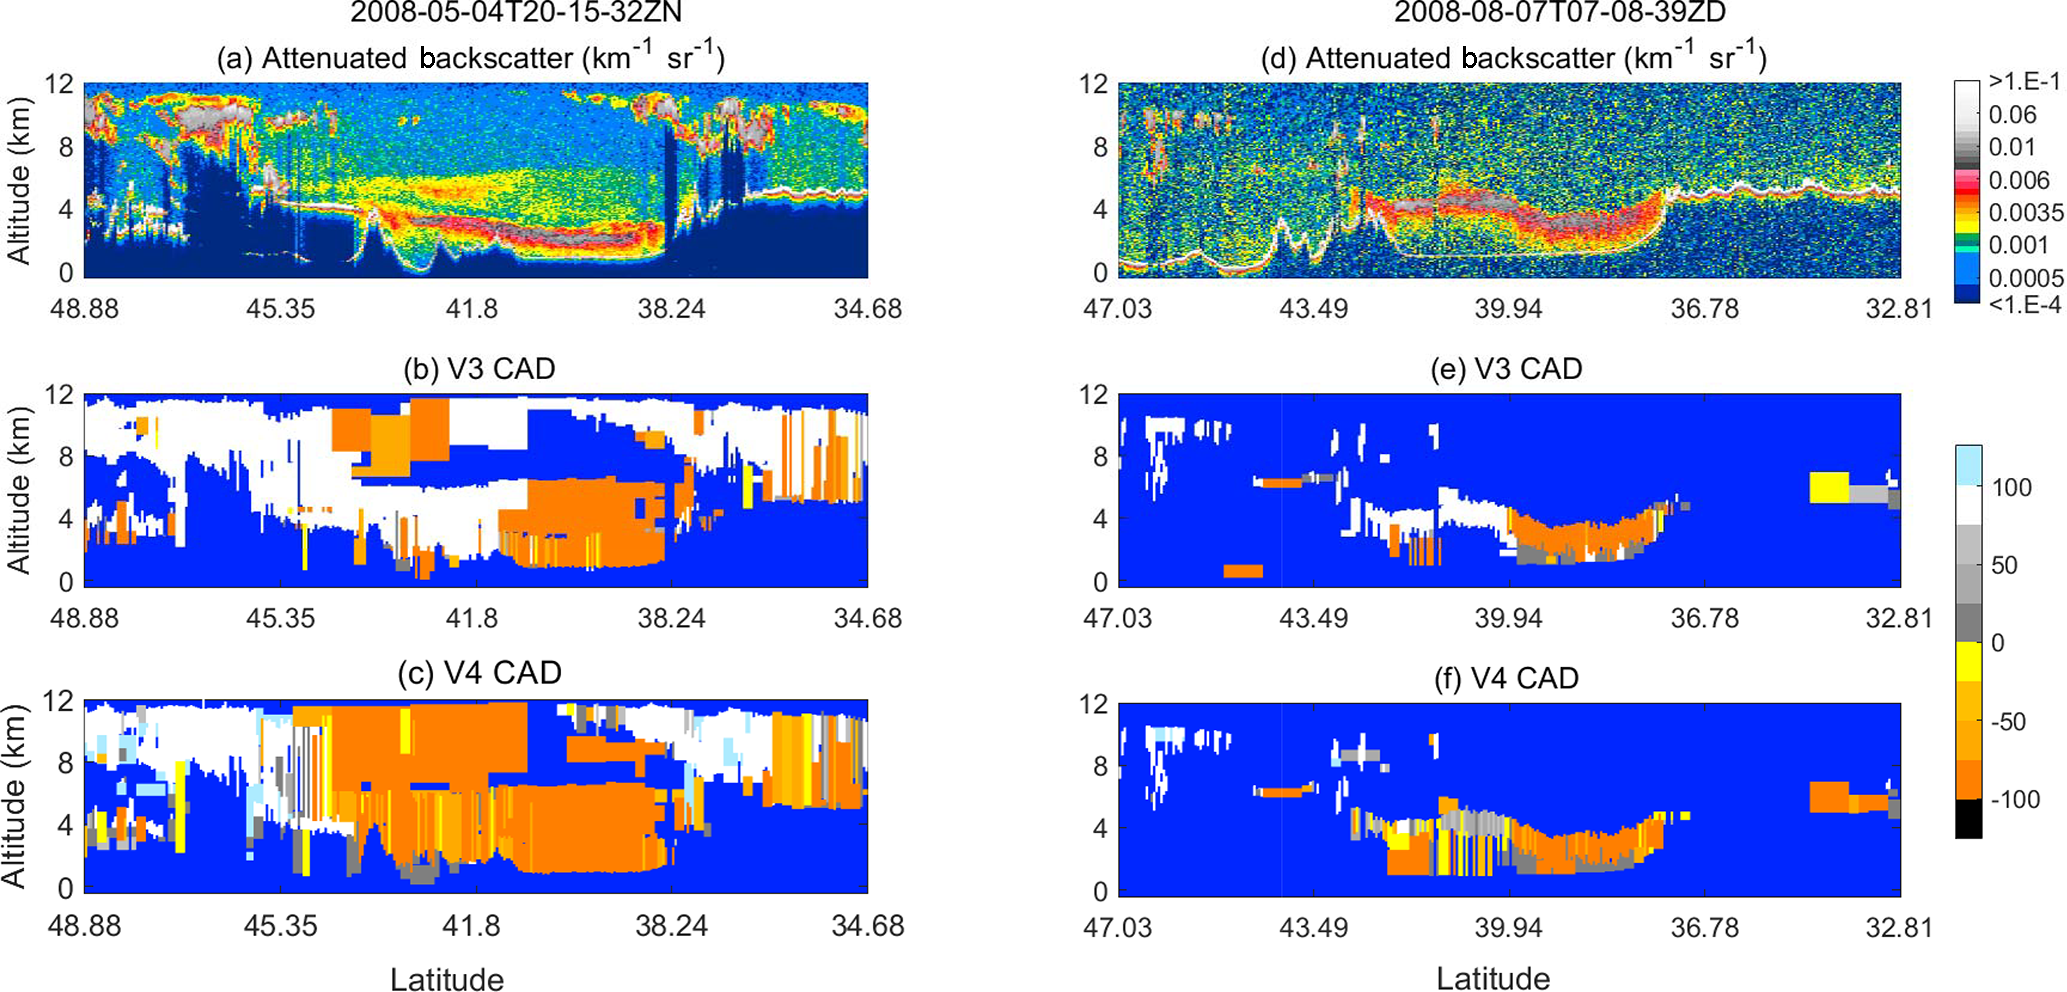 AMT - Discriminating between clouds and aerosols in the CALIOP